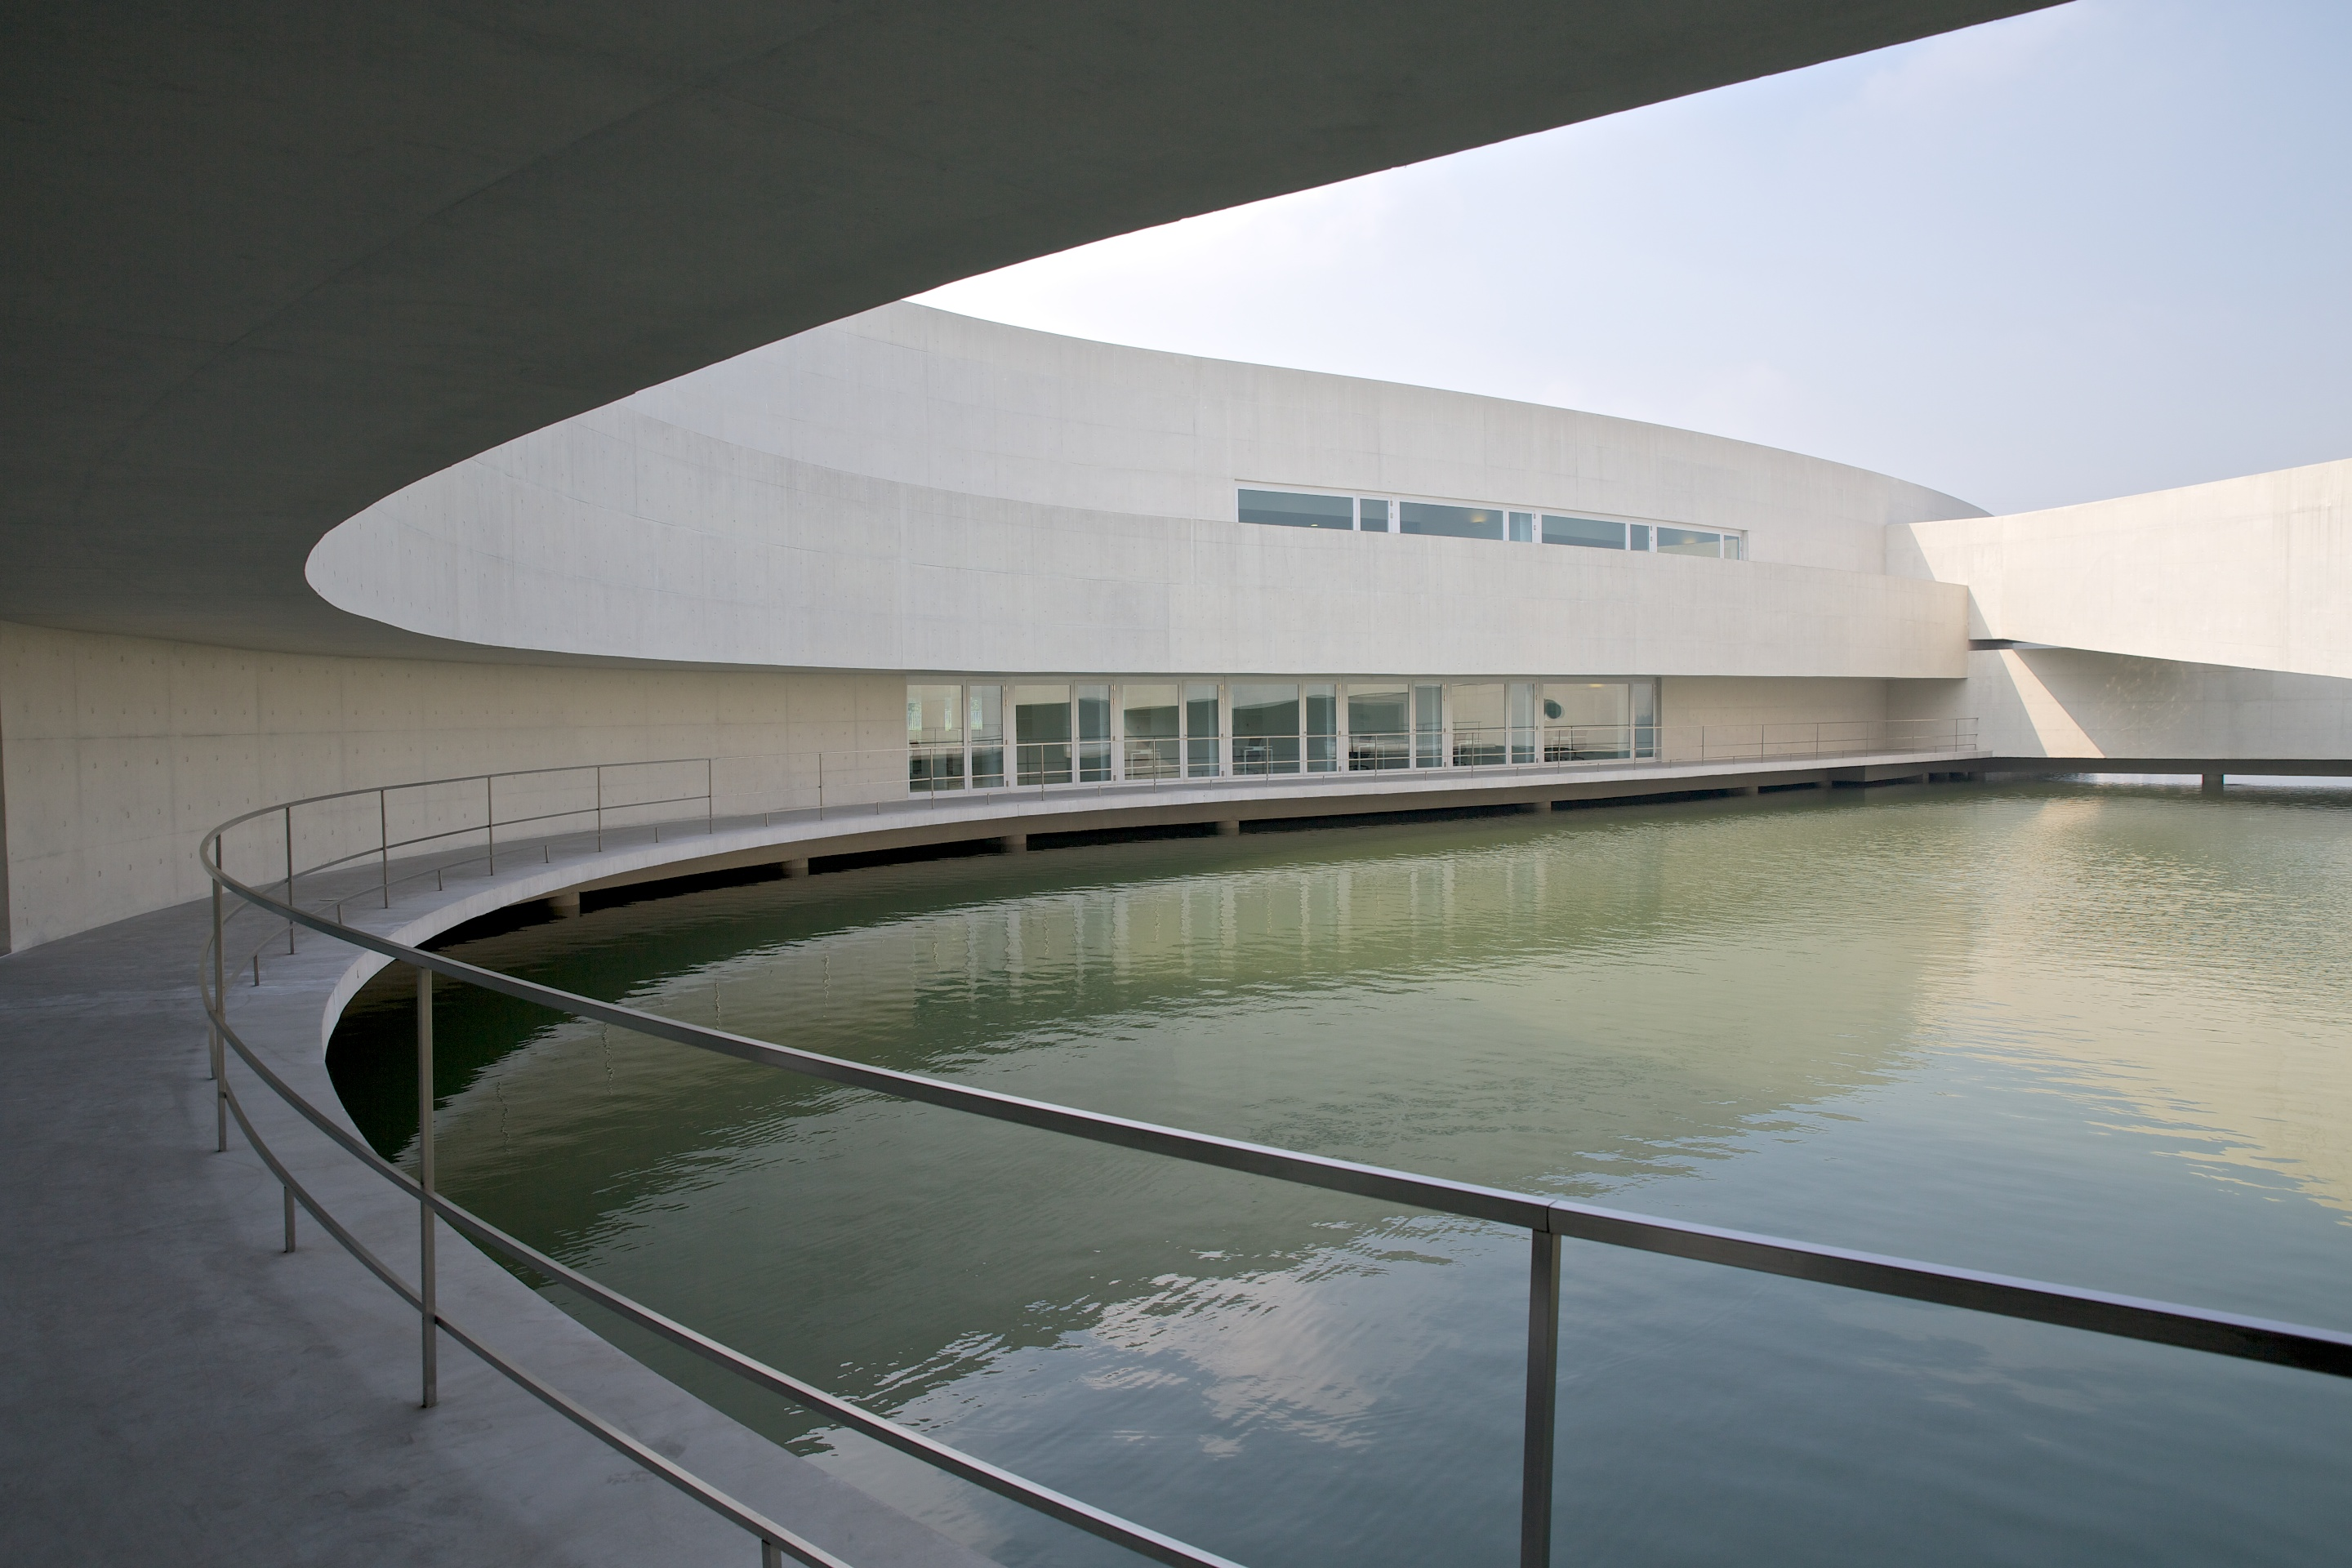 The building on the water